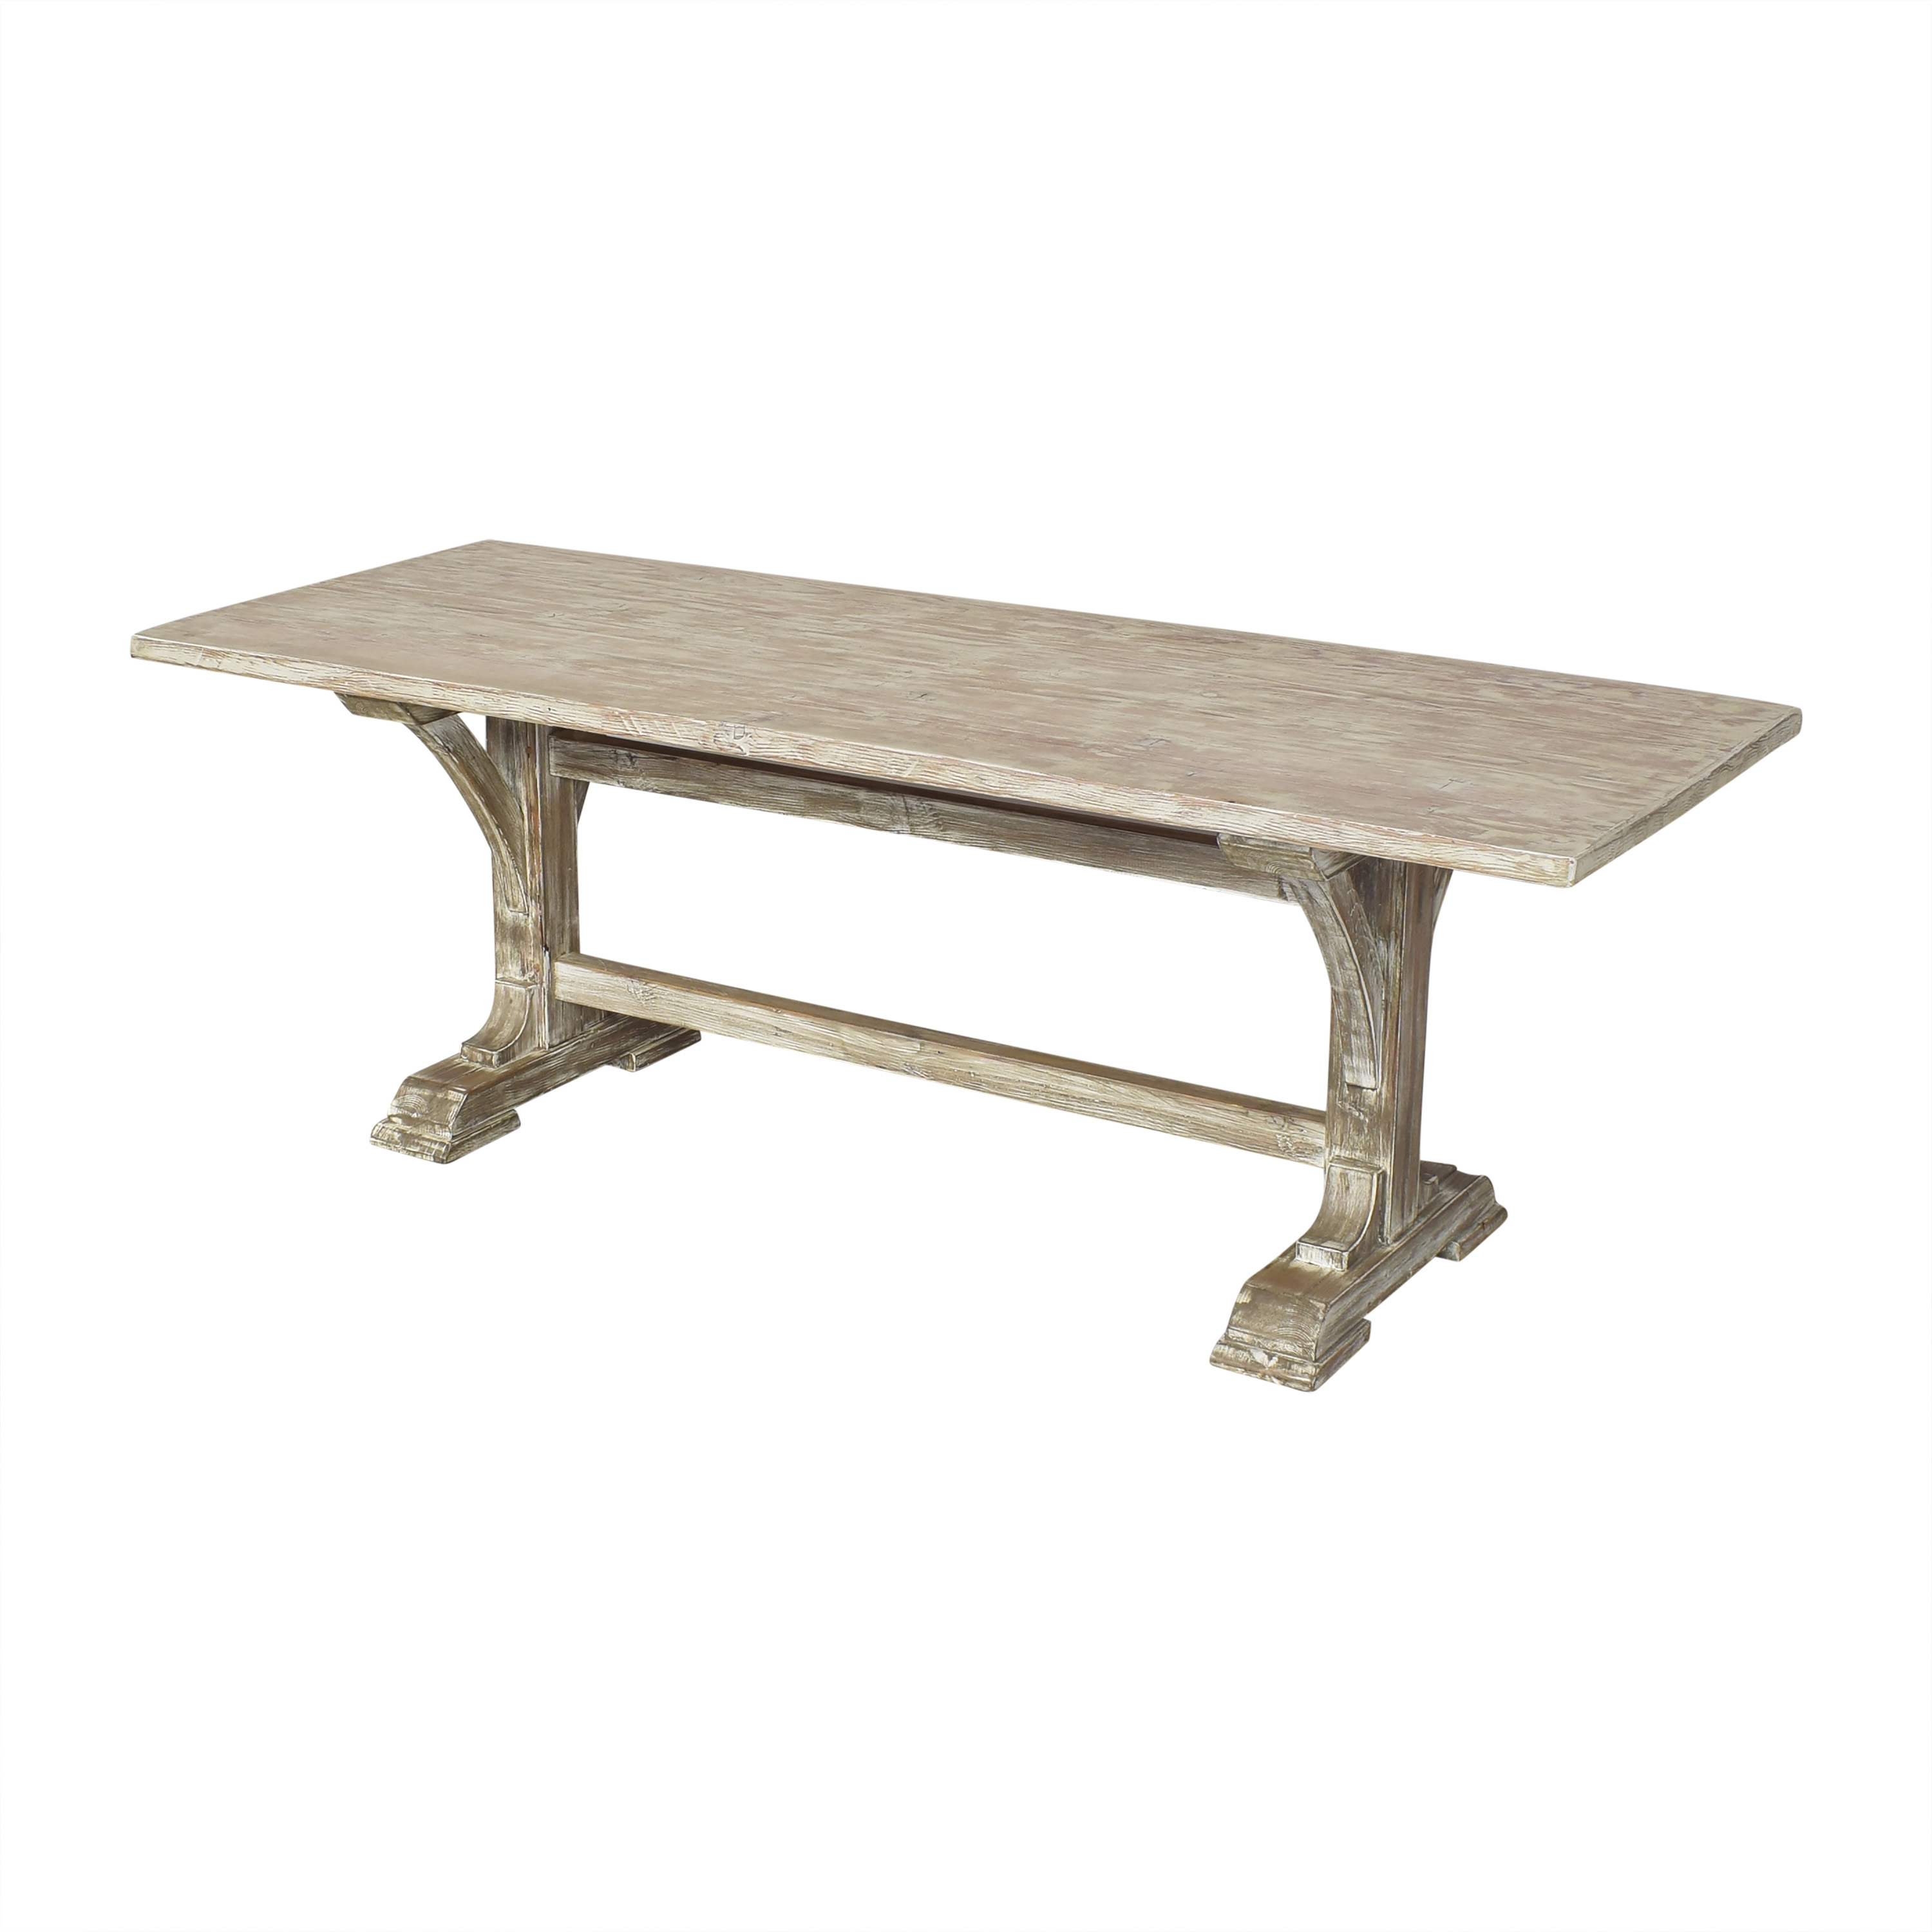 Rustic Trestle Dining Table ma